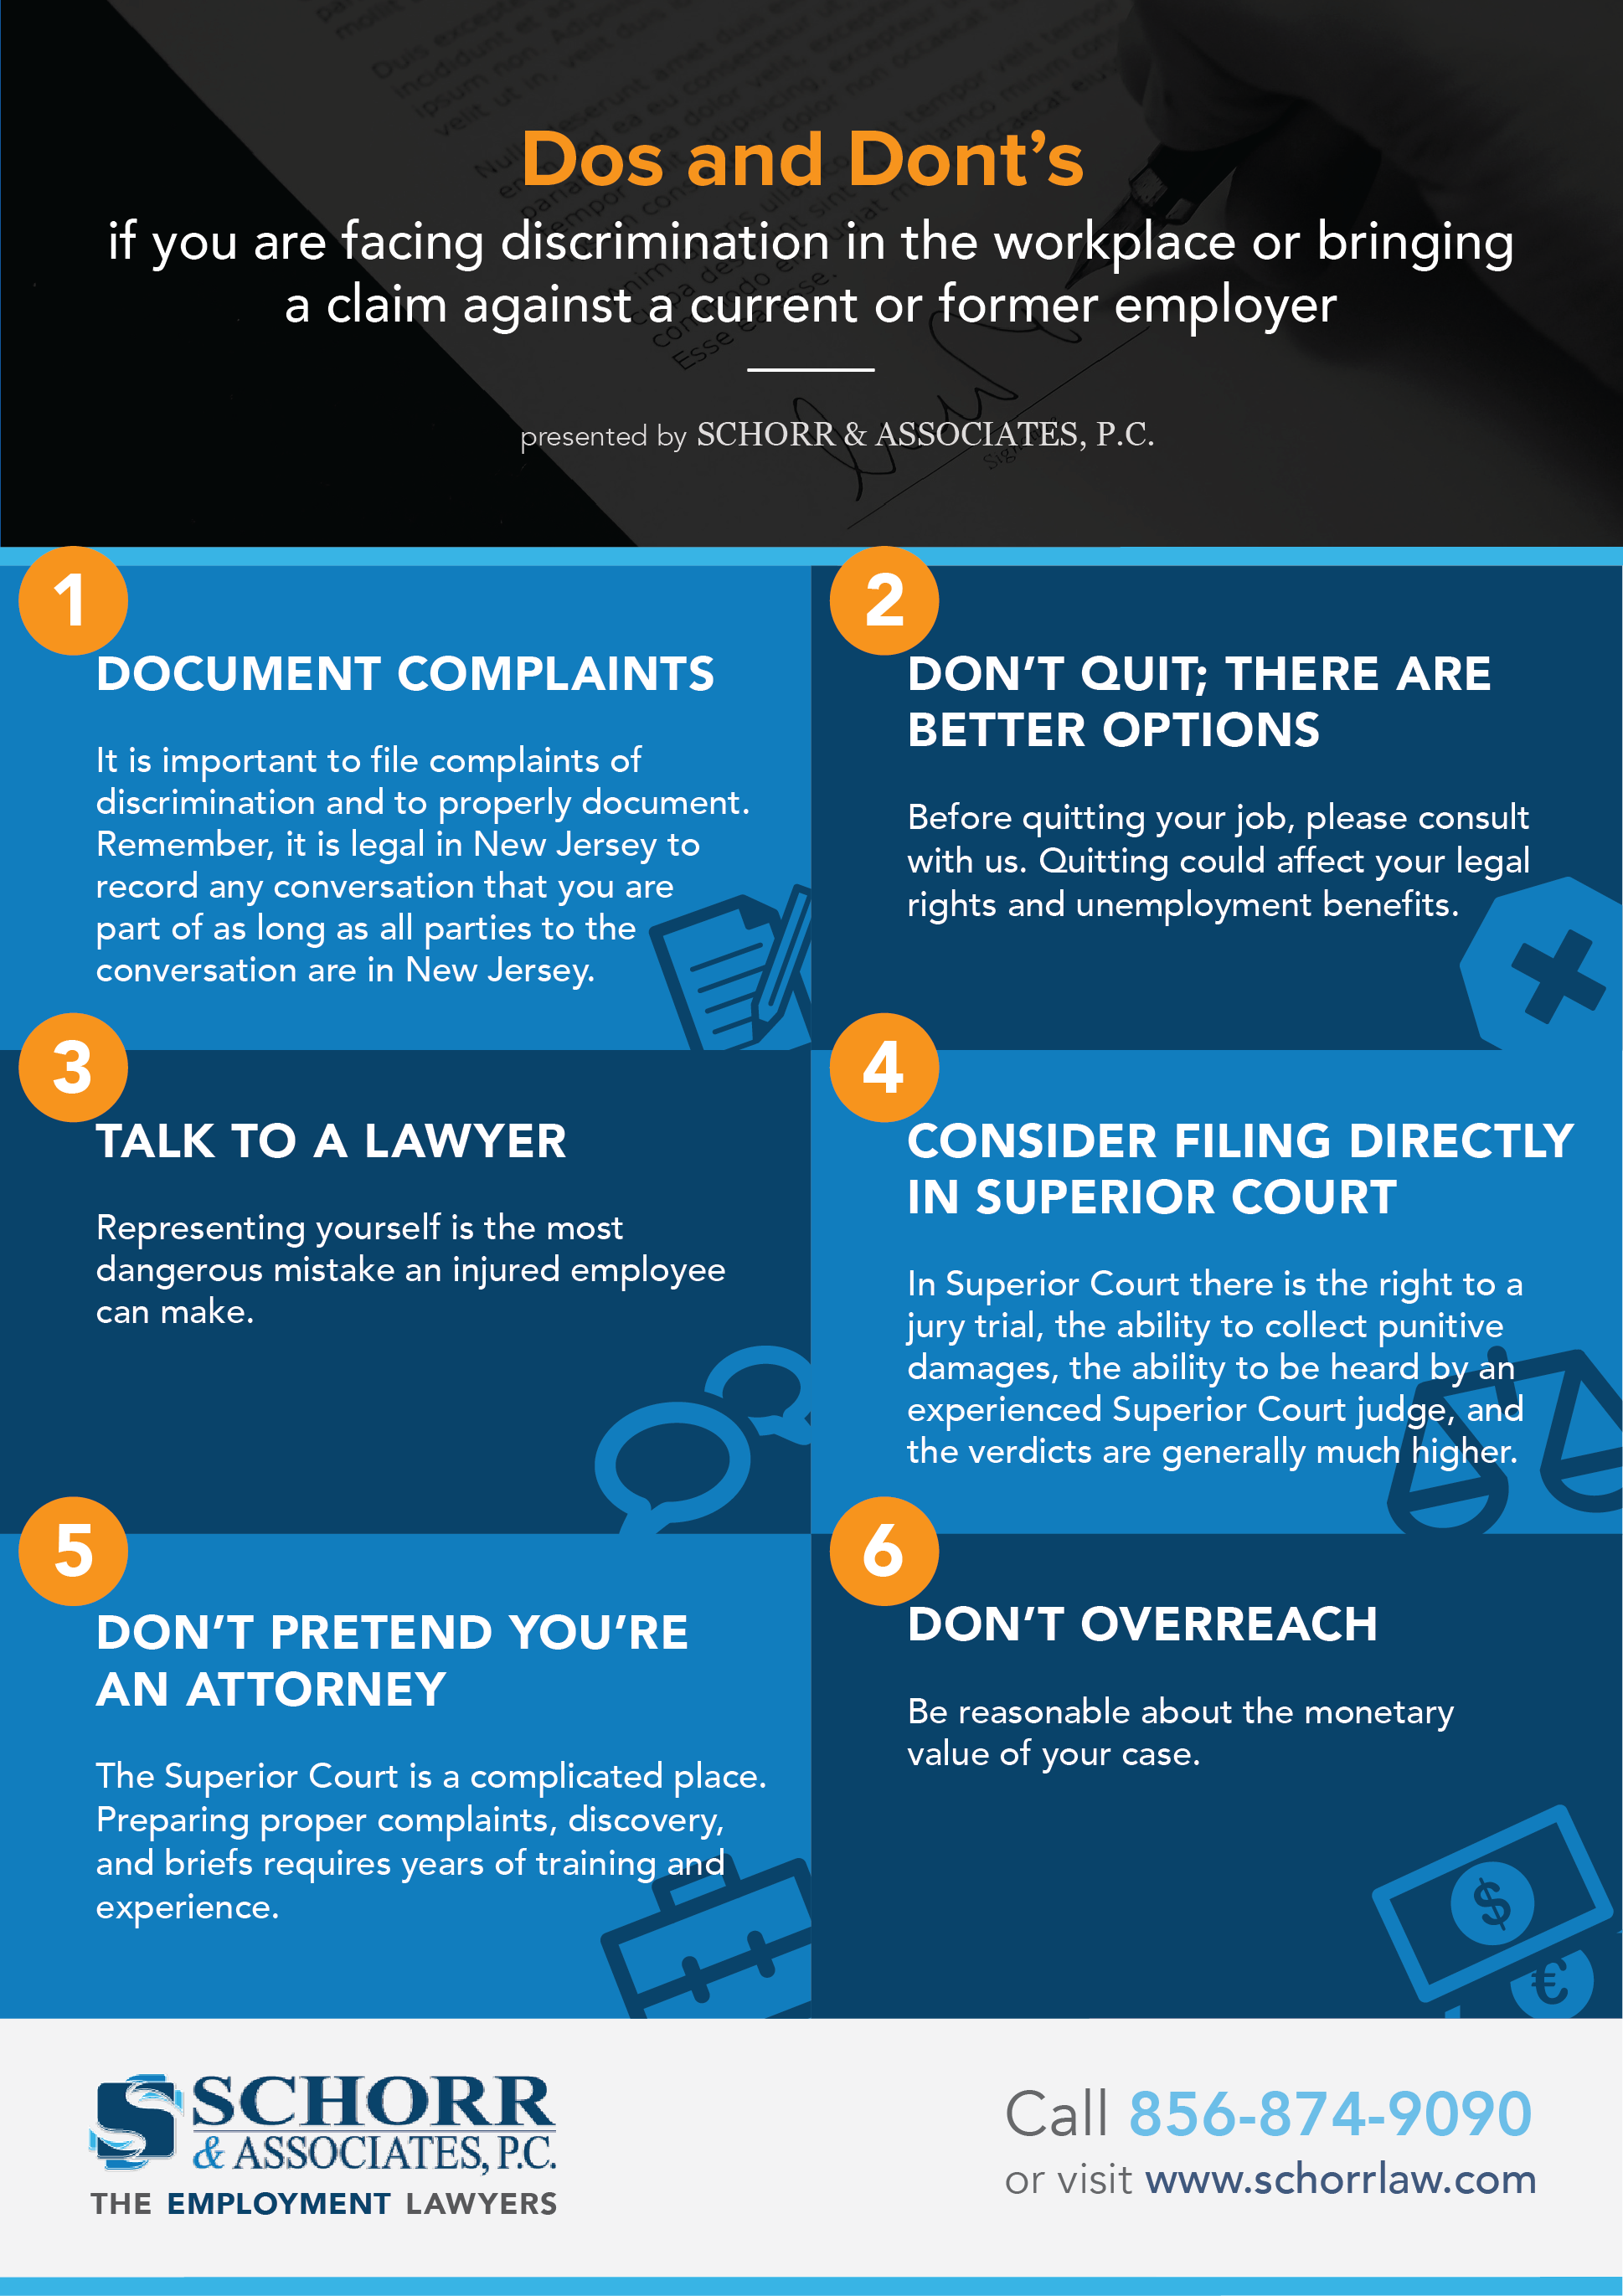 Dos & Dont's if You Are Facing Discrimination Infographic